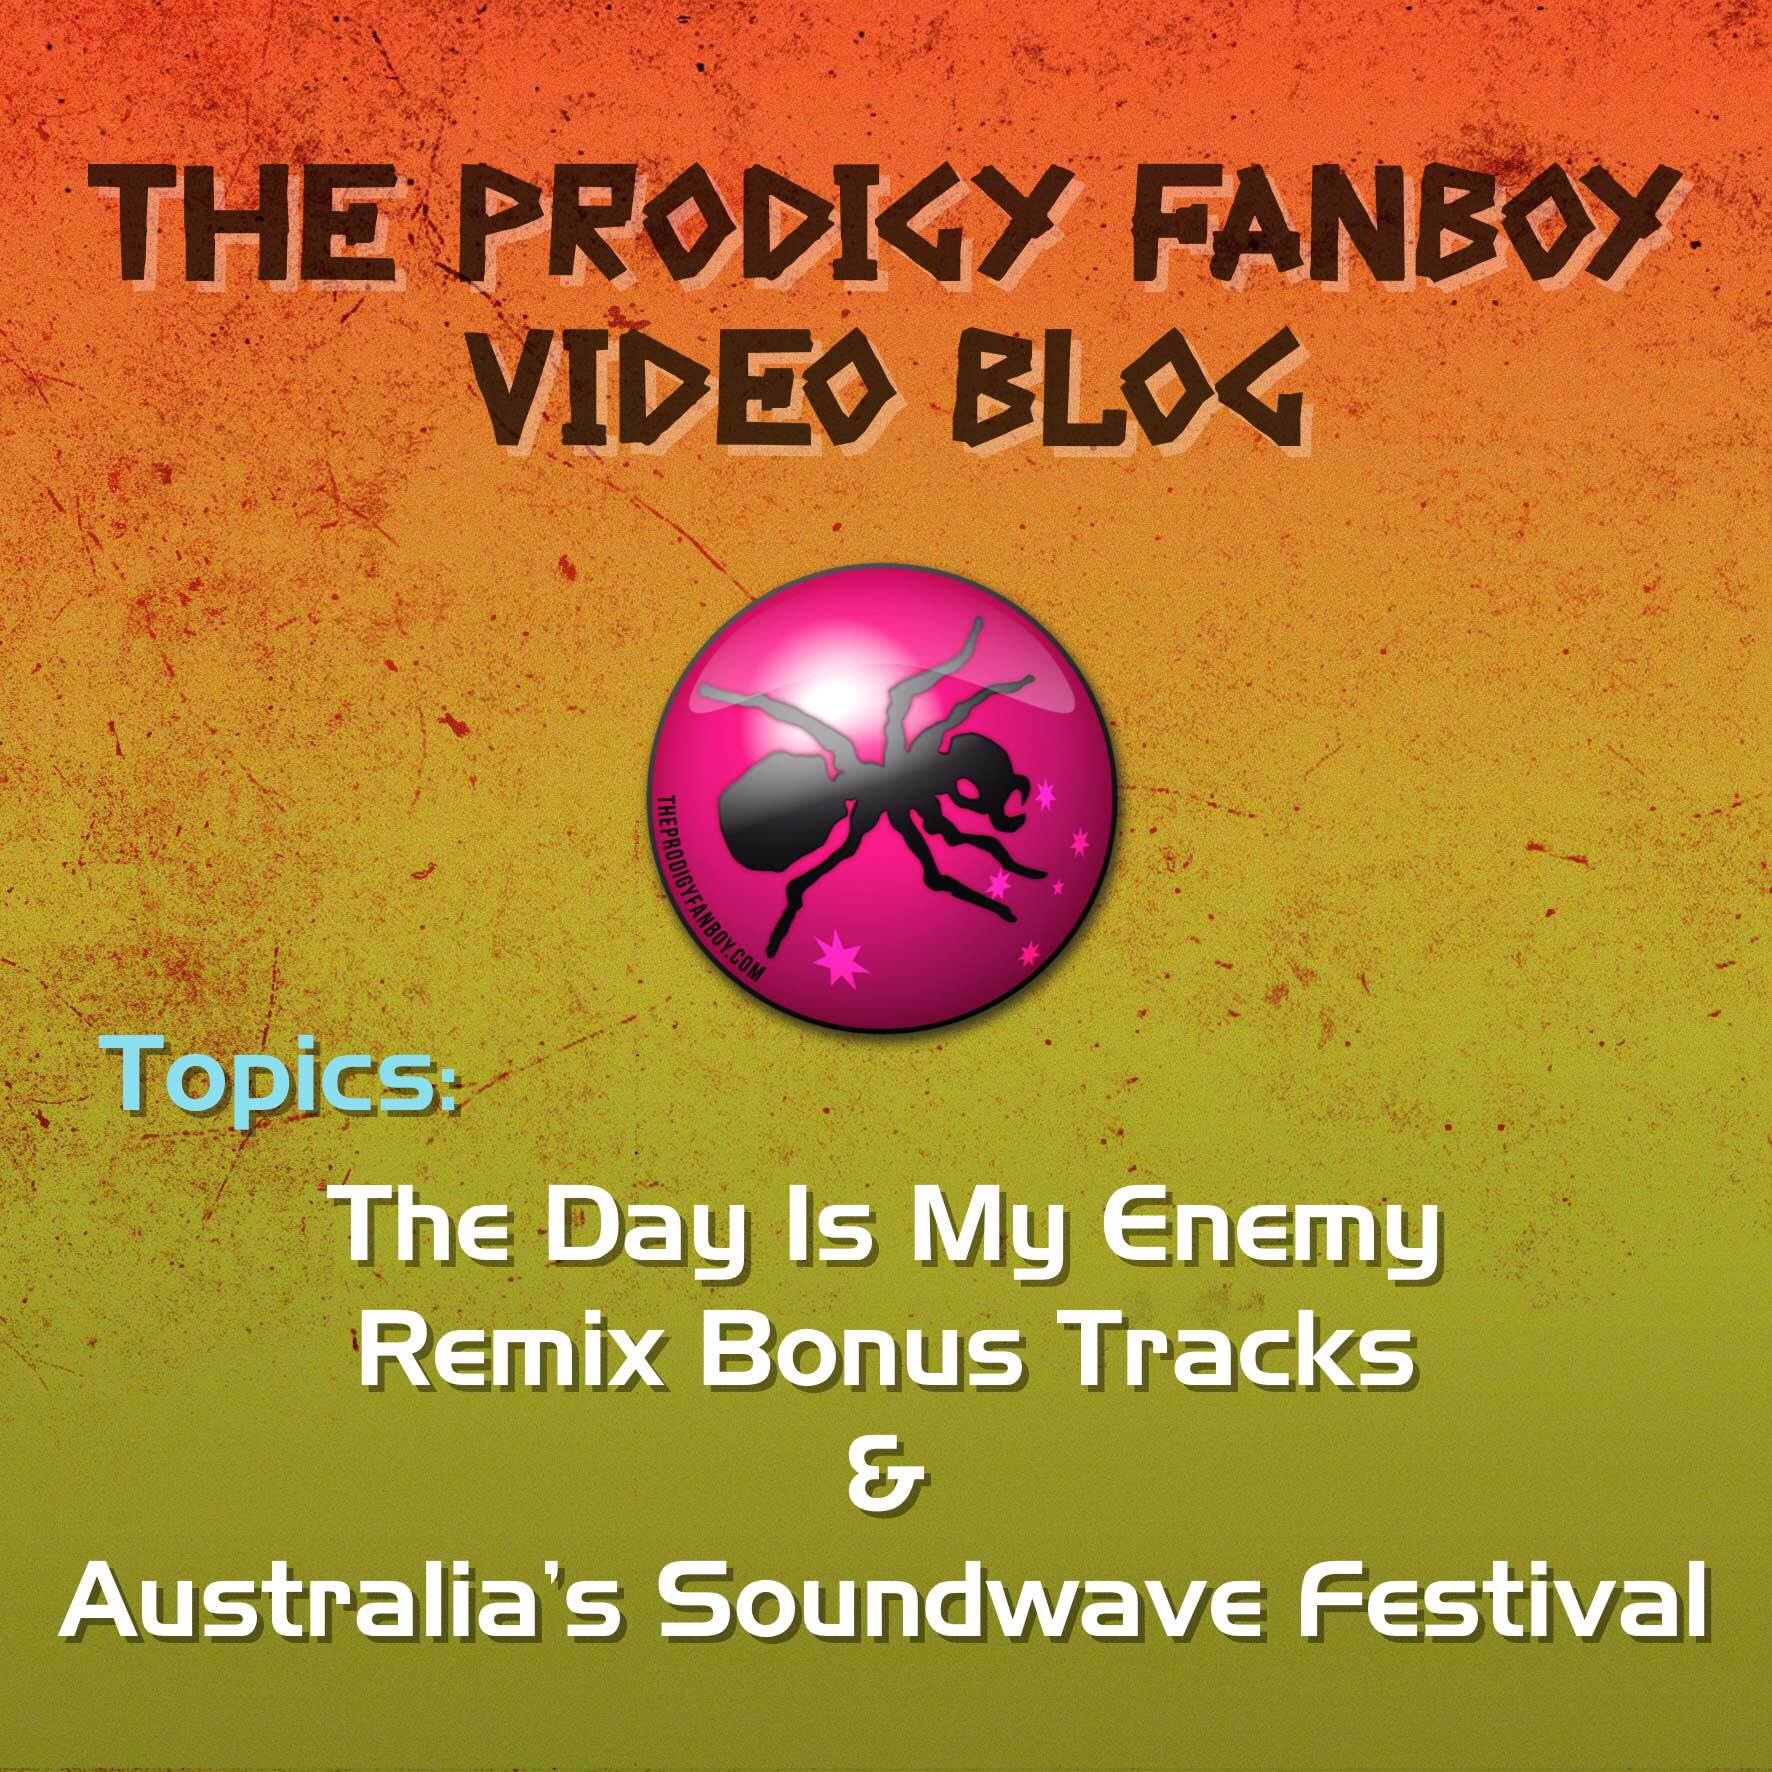 The Prodigy Fanboy Video Blog Episode 11